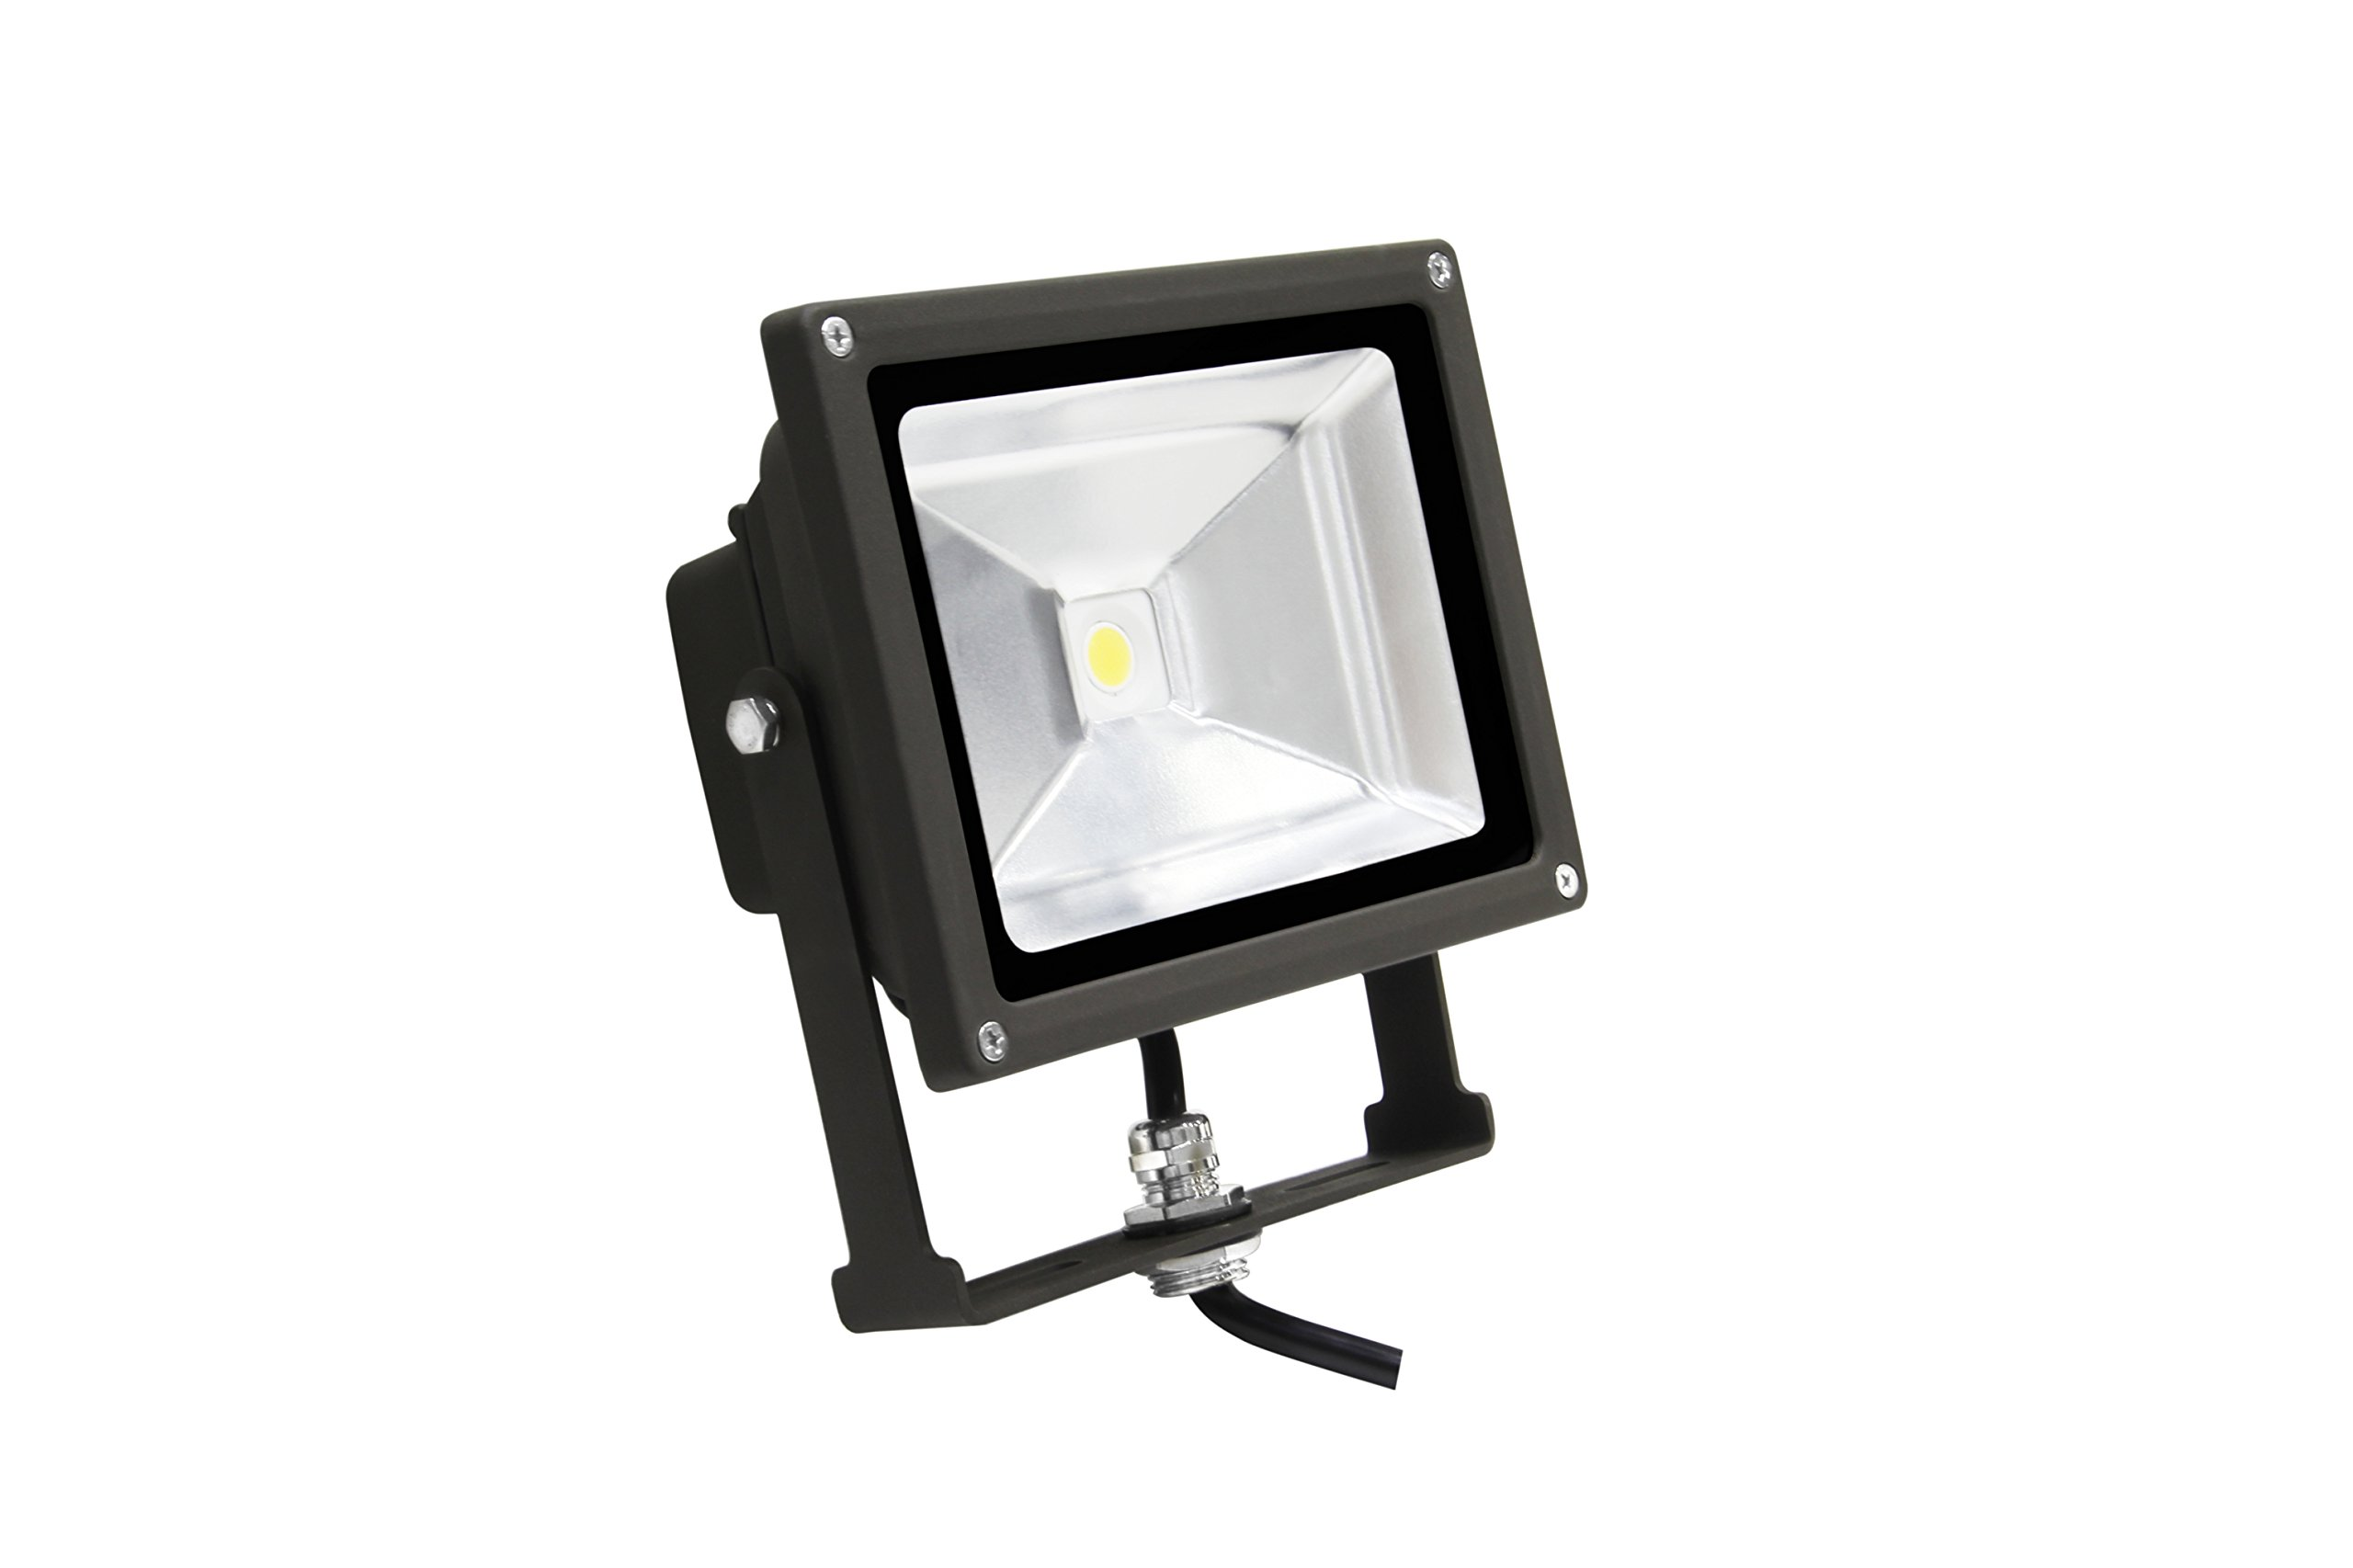 MaxLite FLS20U50B Led Small Flood - 19W, 120-277V, 5000K, Bronze, Nema 7H x 6V Wide Dist.,